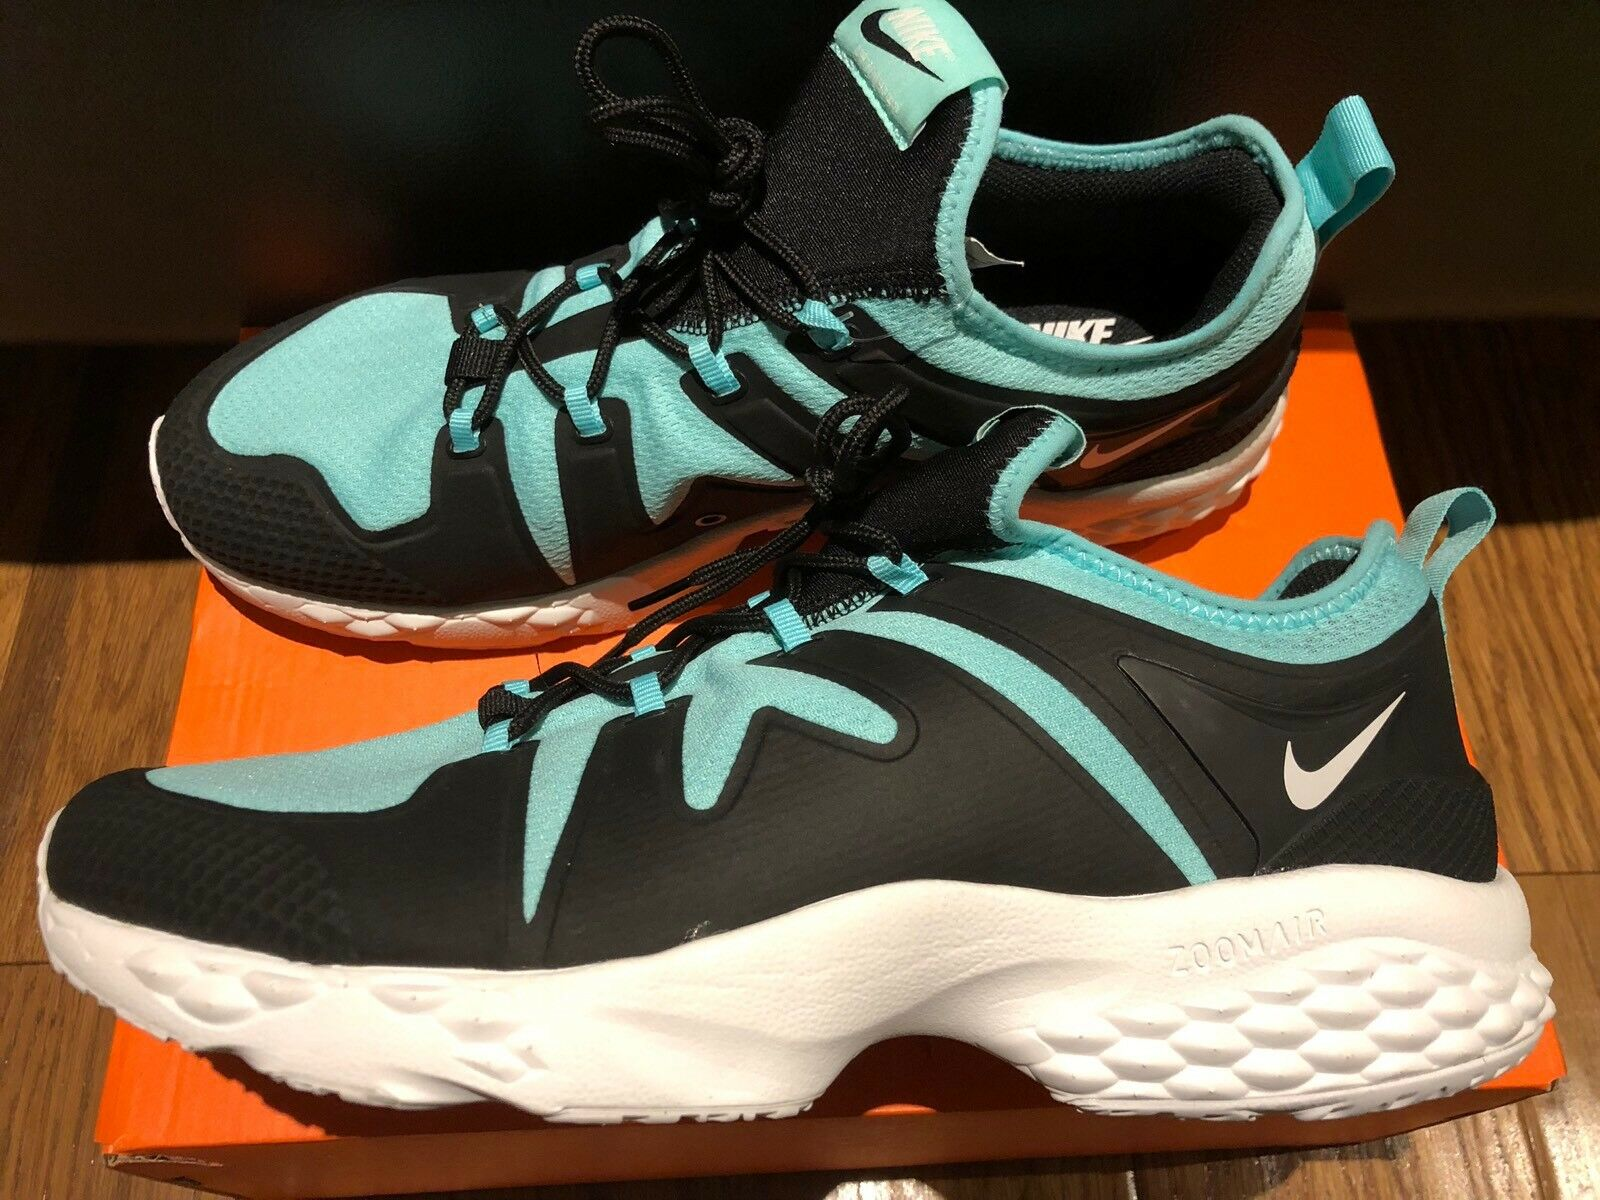 Nike Mens Size 9 Air Zoom LWP '16 SP Shoes Sneaker Turquoise Tiffa ny 918226-006